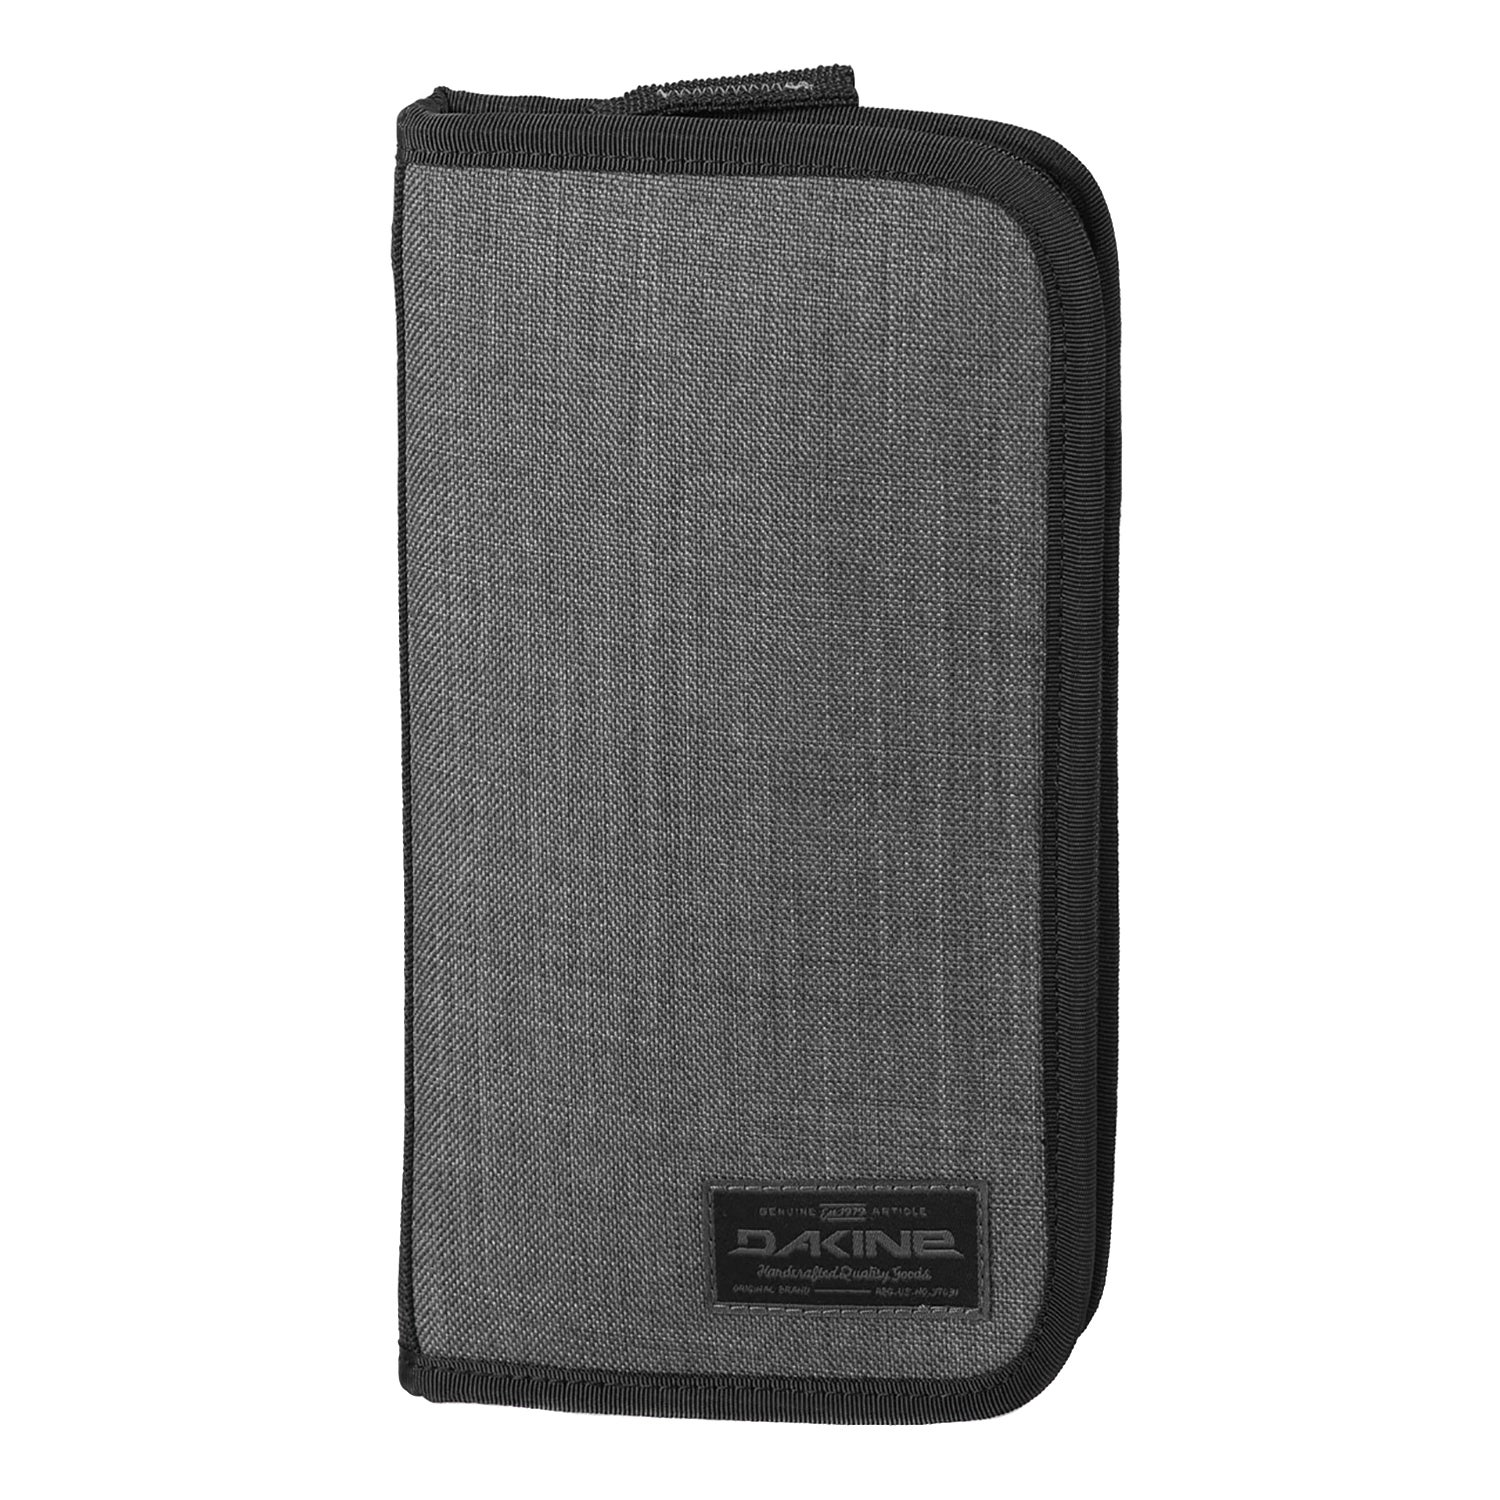 Porta-documentos Dakine Travel Sleeve